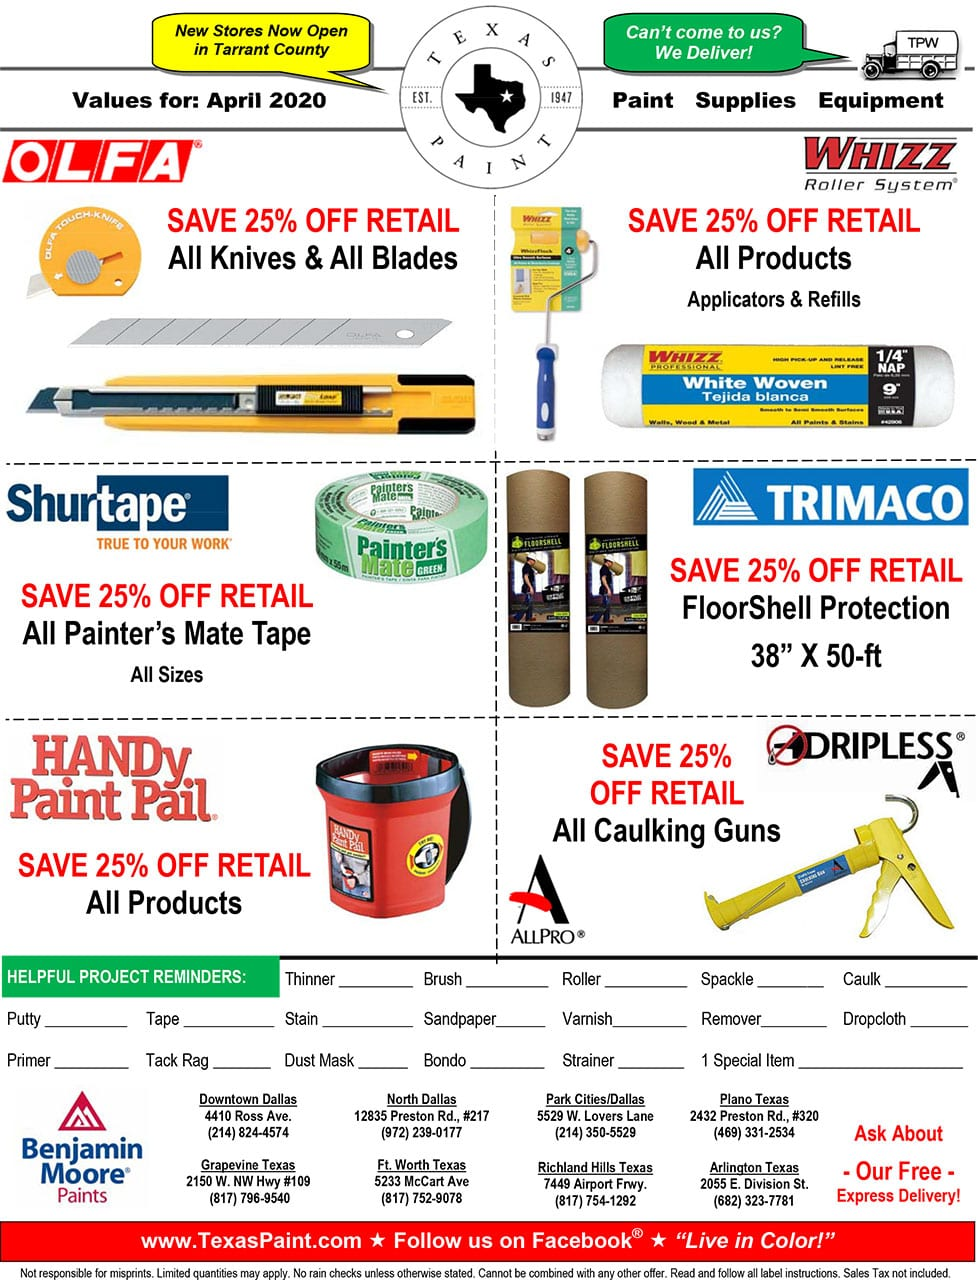 April Offers and Coupons Texas Paint